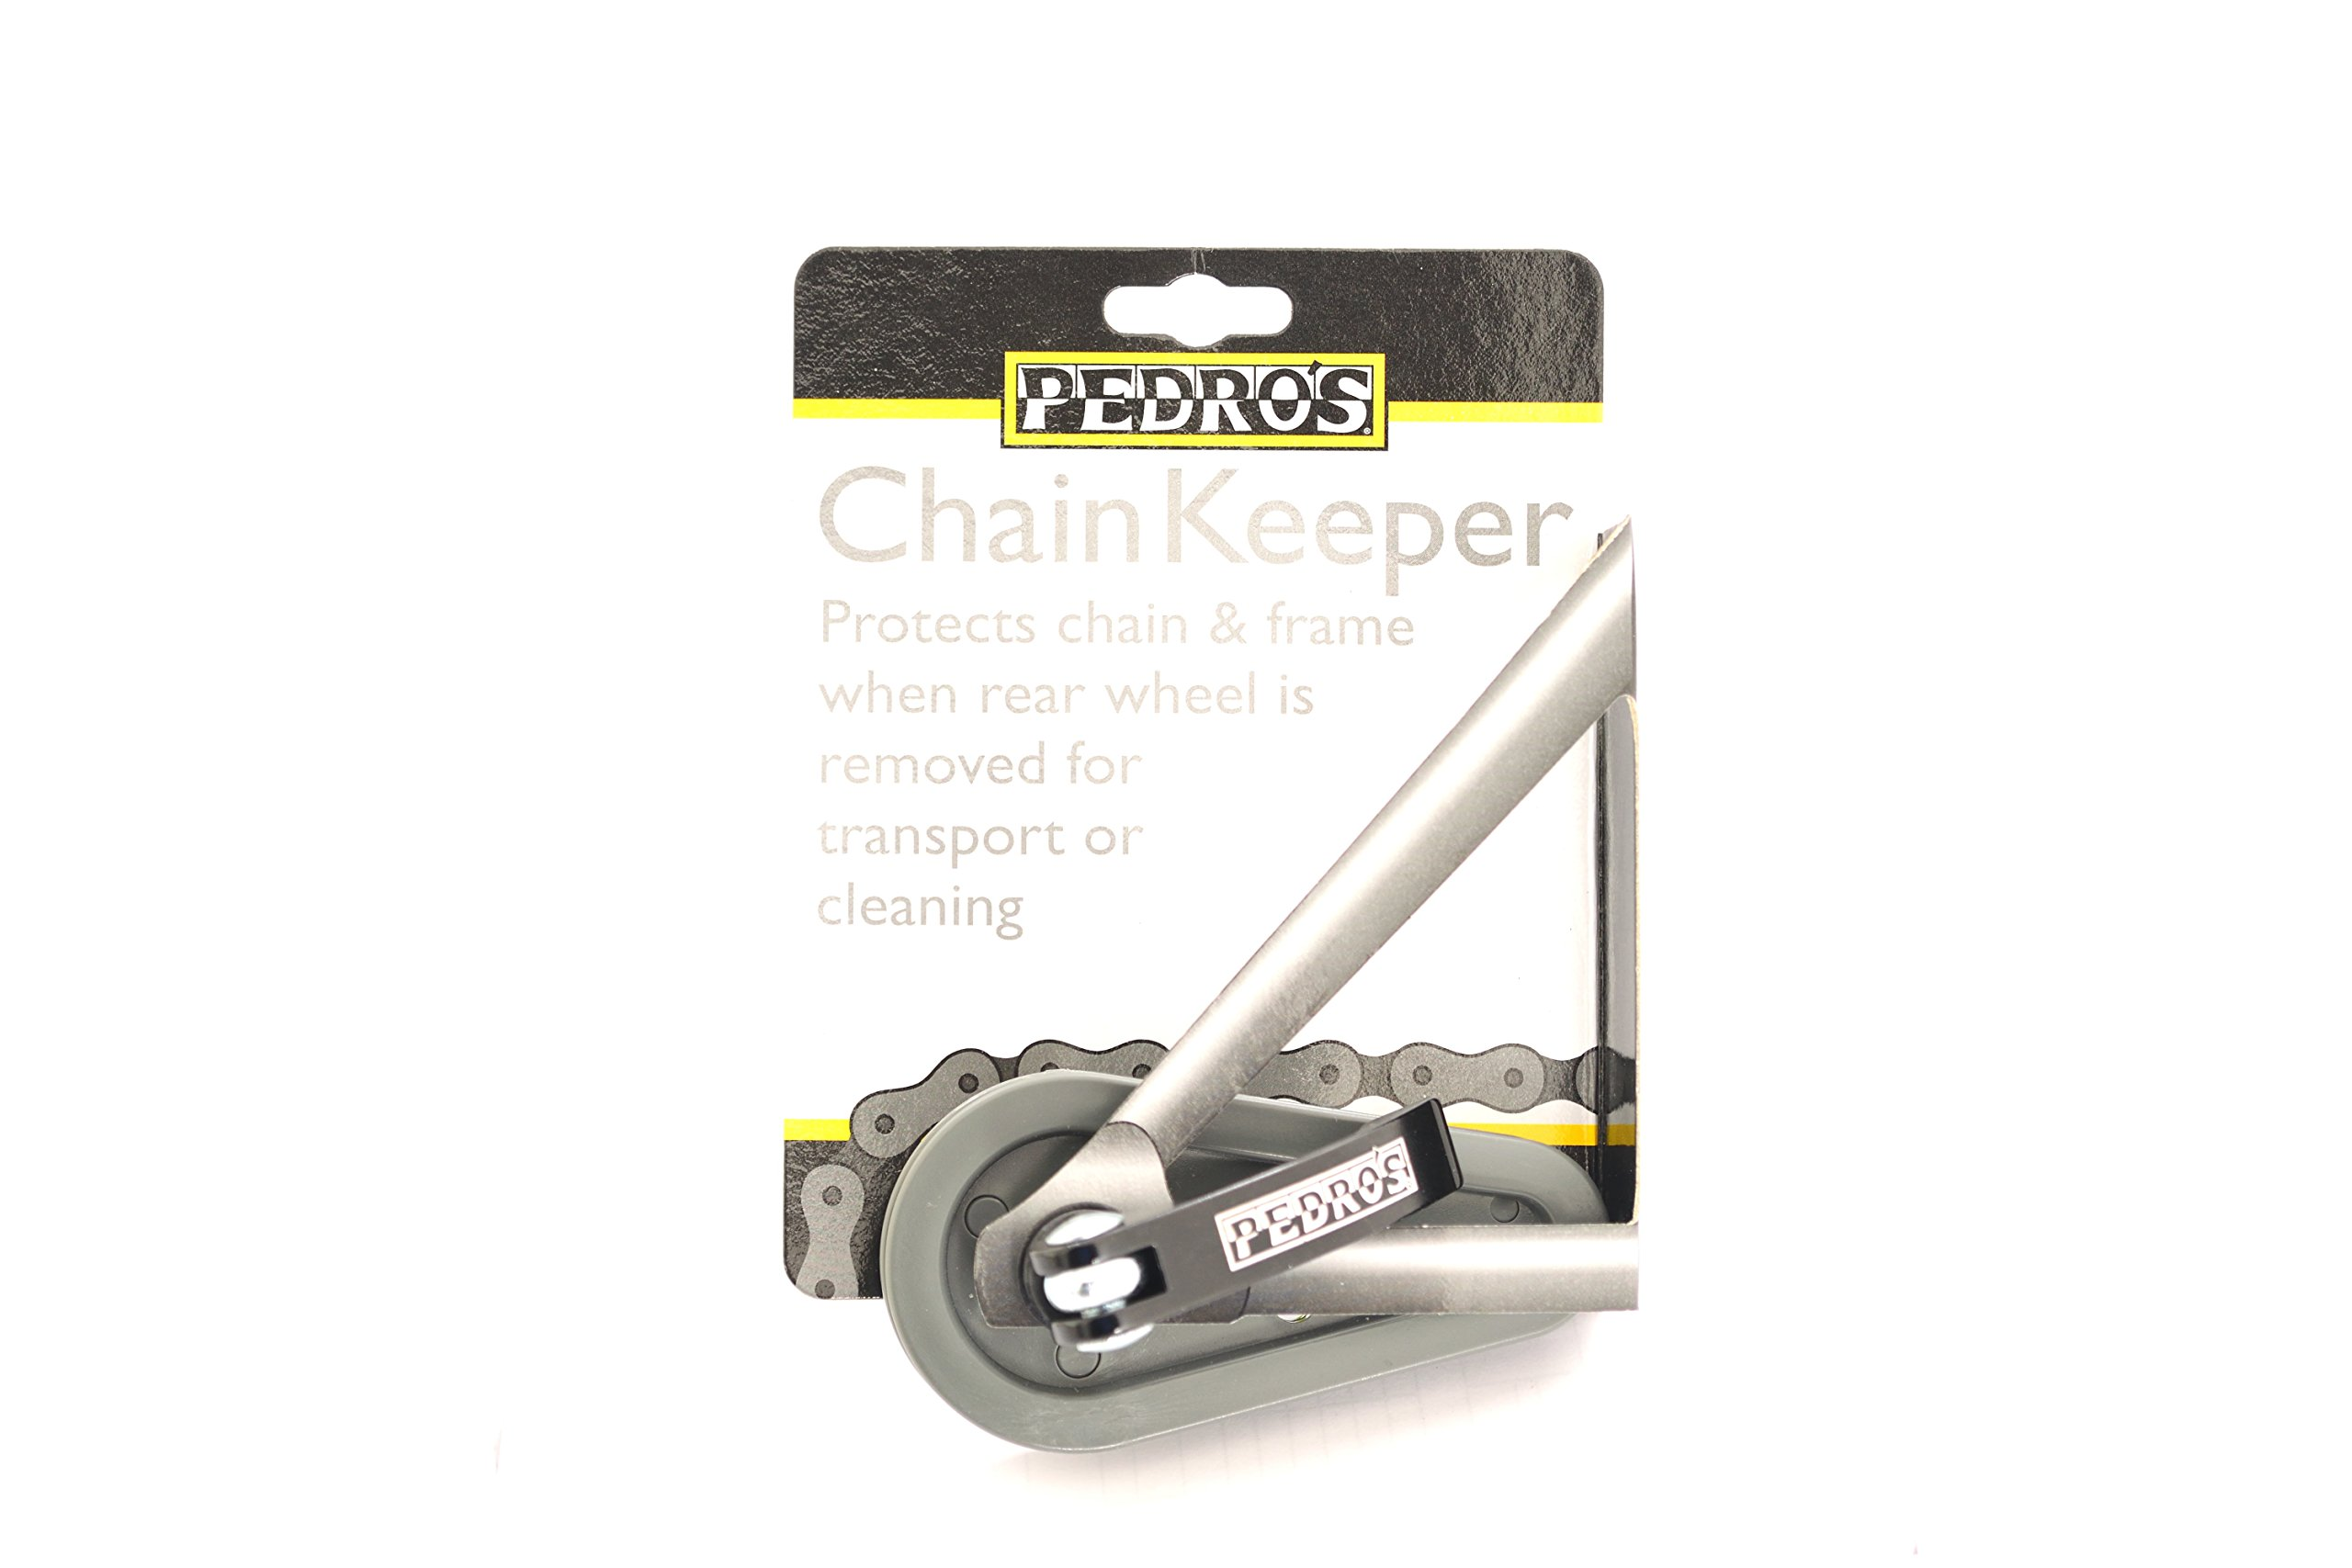 Pedro's Chain Keeper Bicycle Chain Tool